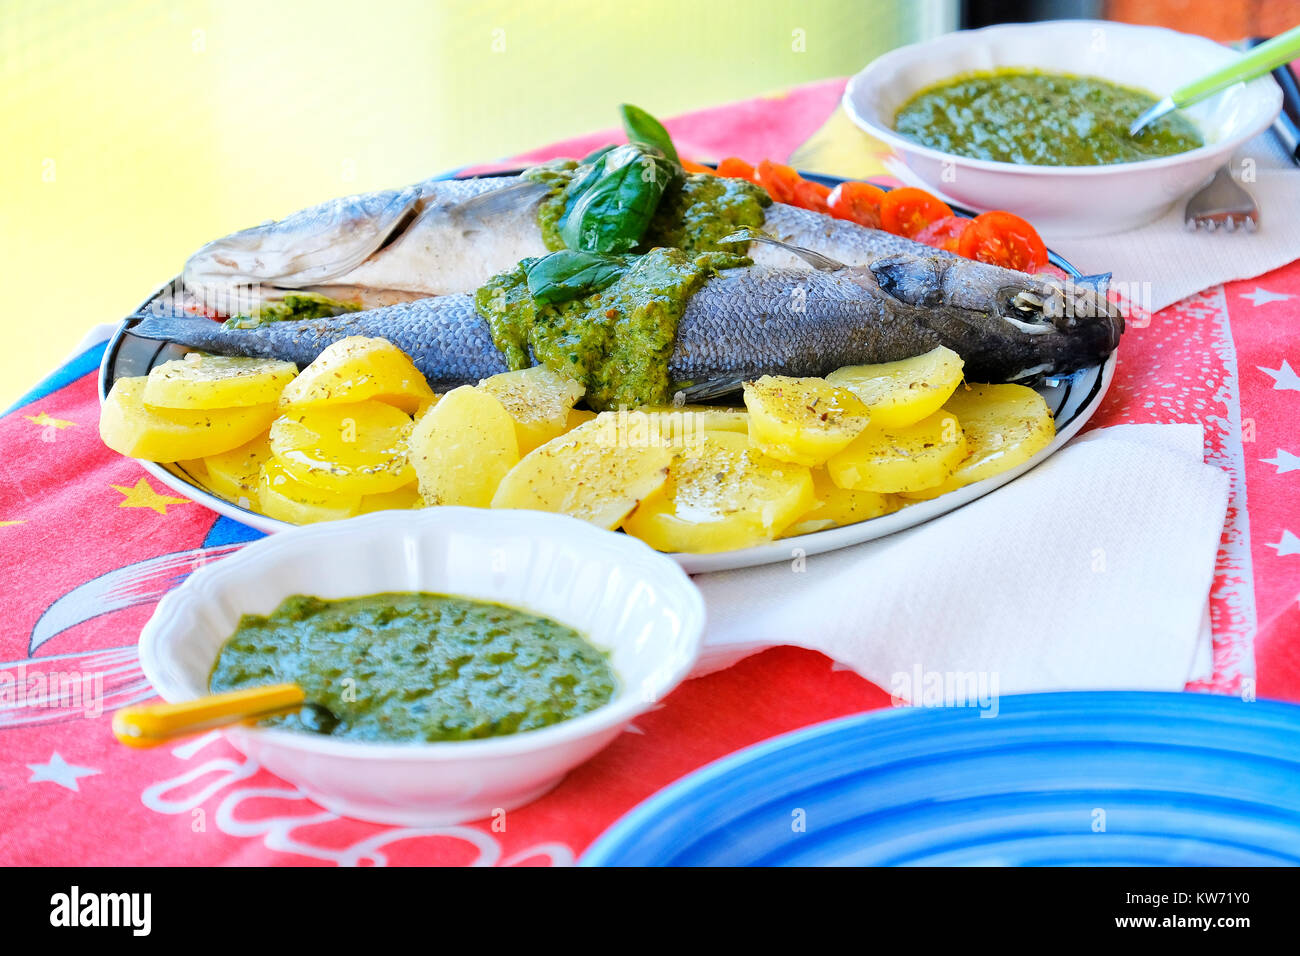 european sea bass branzino steaming potatoes tomatoes basil sauce recipe - Stock Image